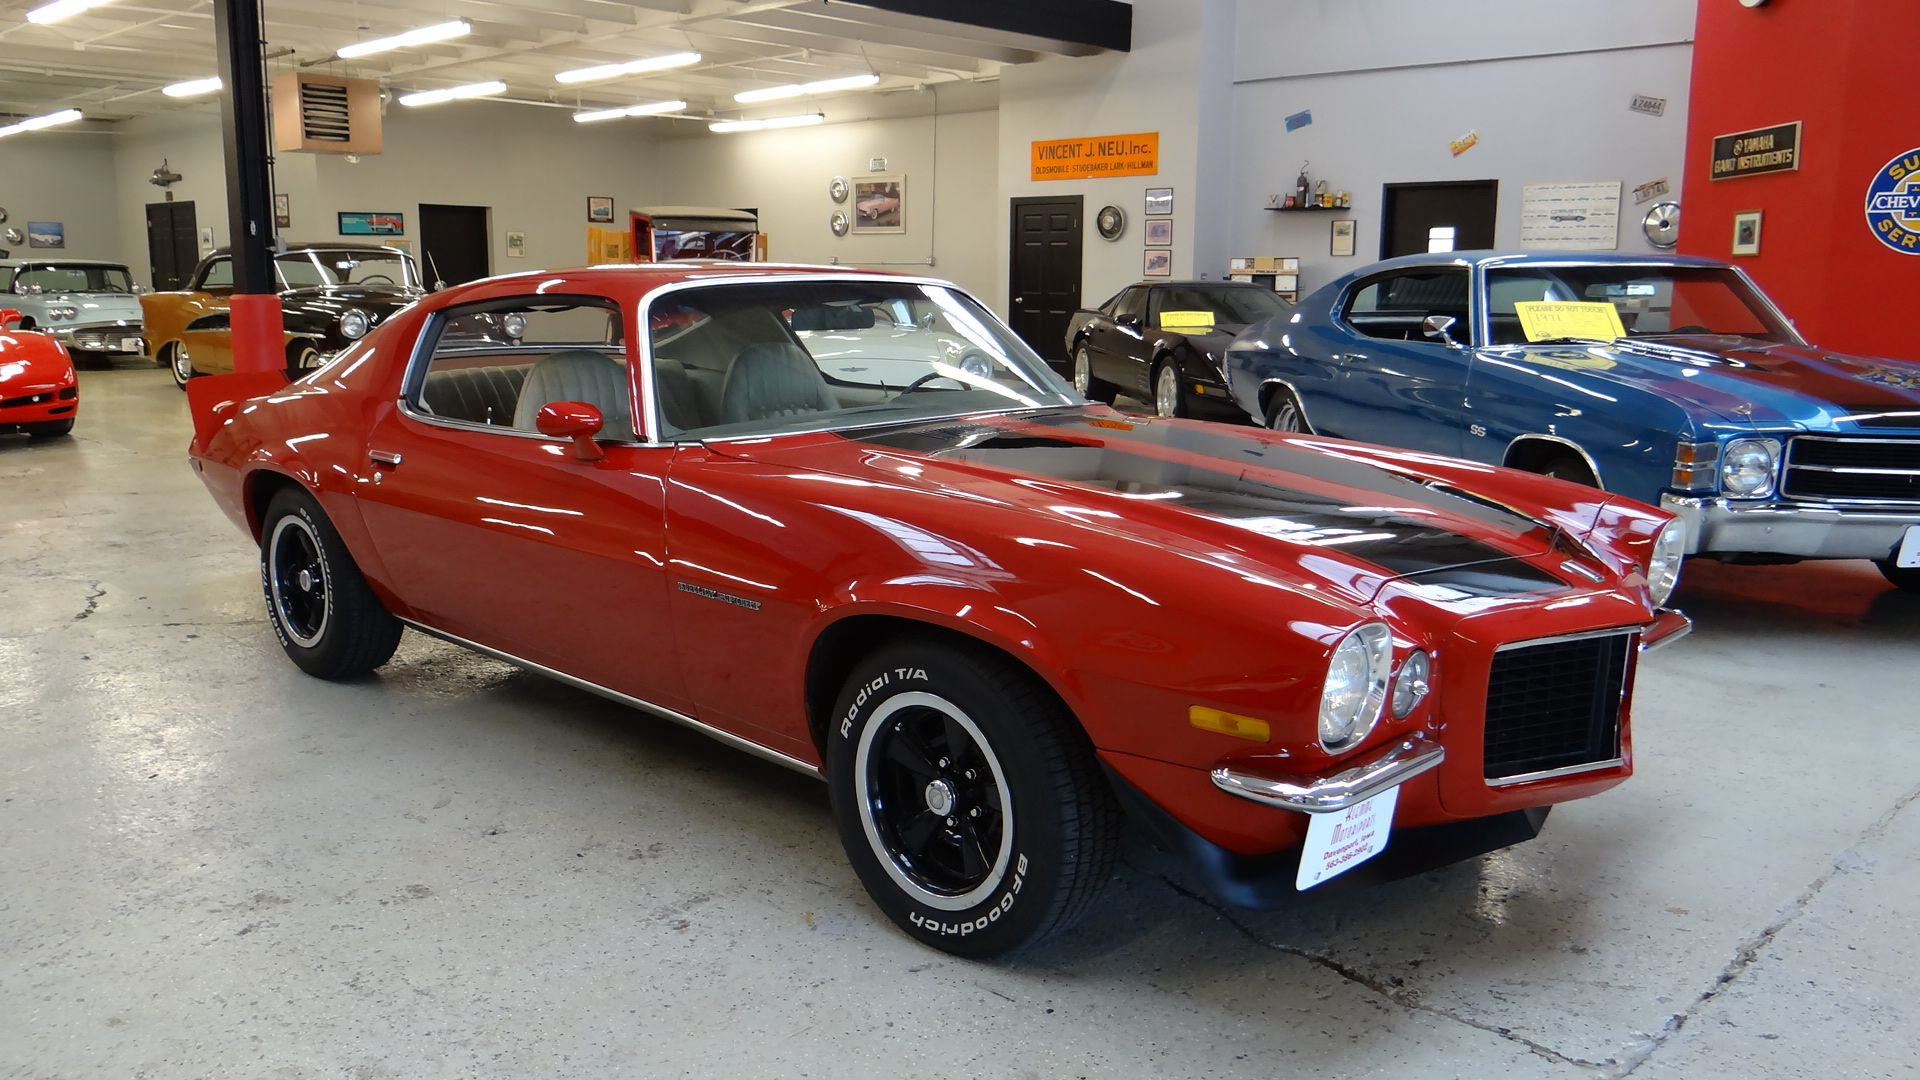 1979 chevrolet camaro z28 gold for sale in usa for 18 500 classic chevys pinterest chevrolet camaro chevrolet and cars